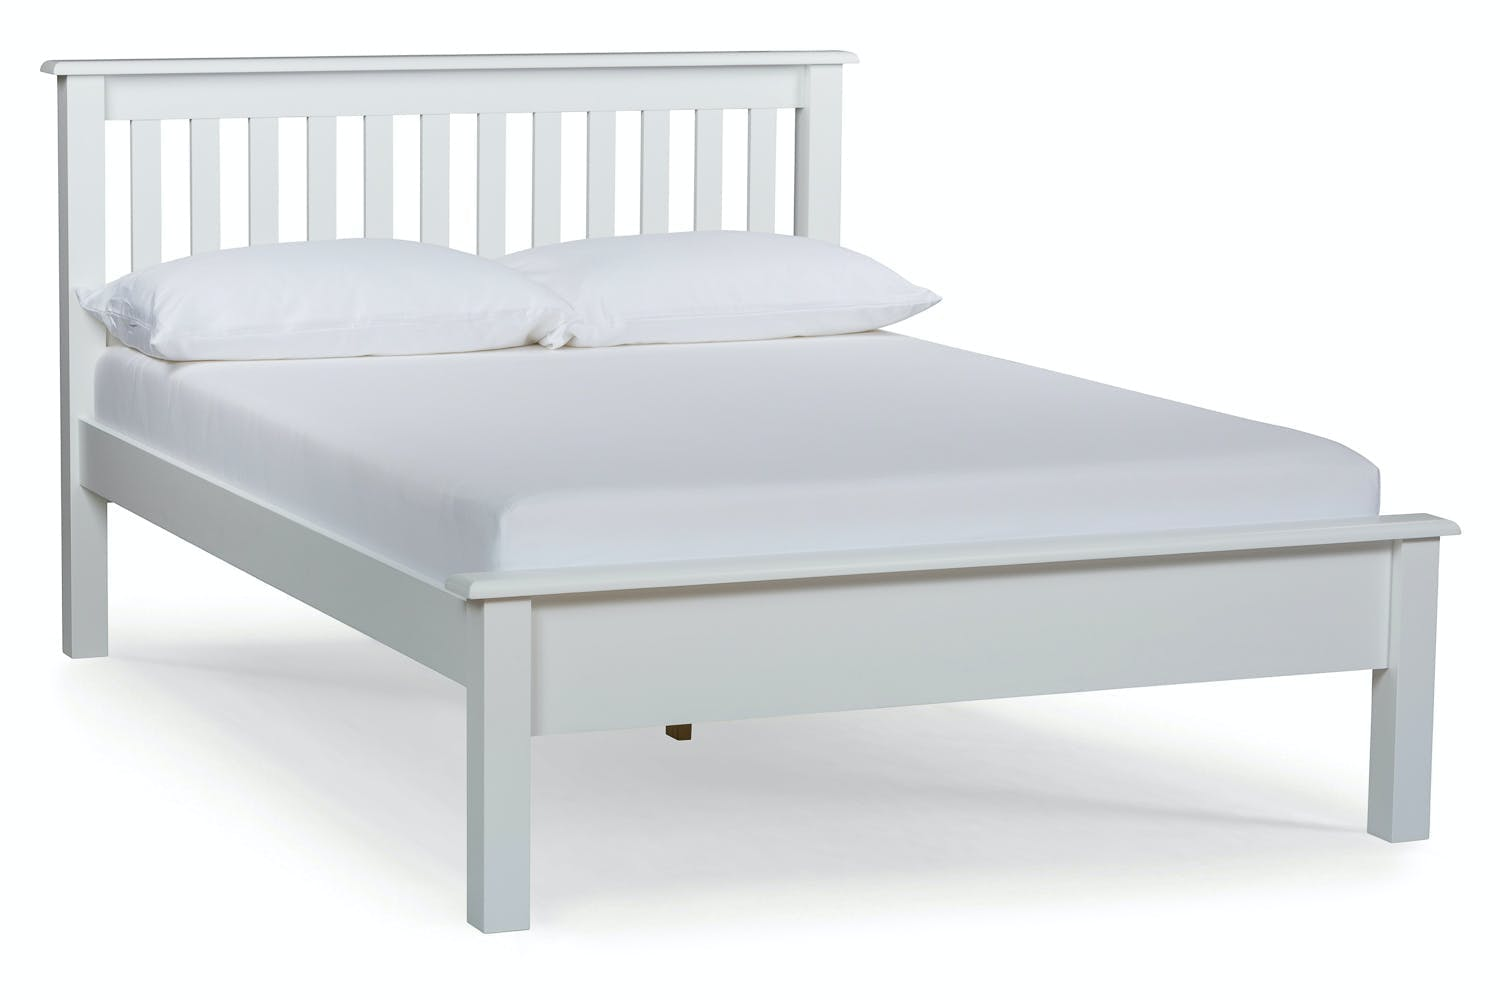 shaker small double bed frame 4ft white ireland. Black Bedroom Furniture Sets. Home Design Ideas